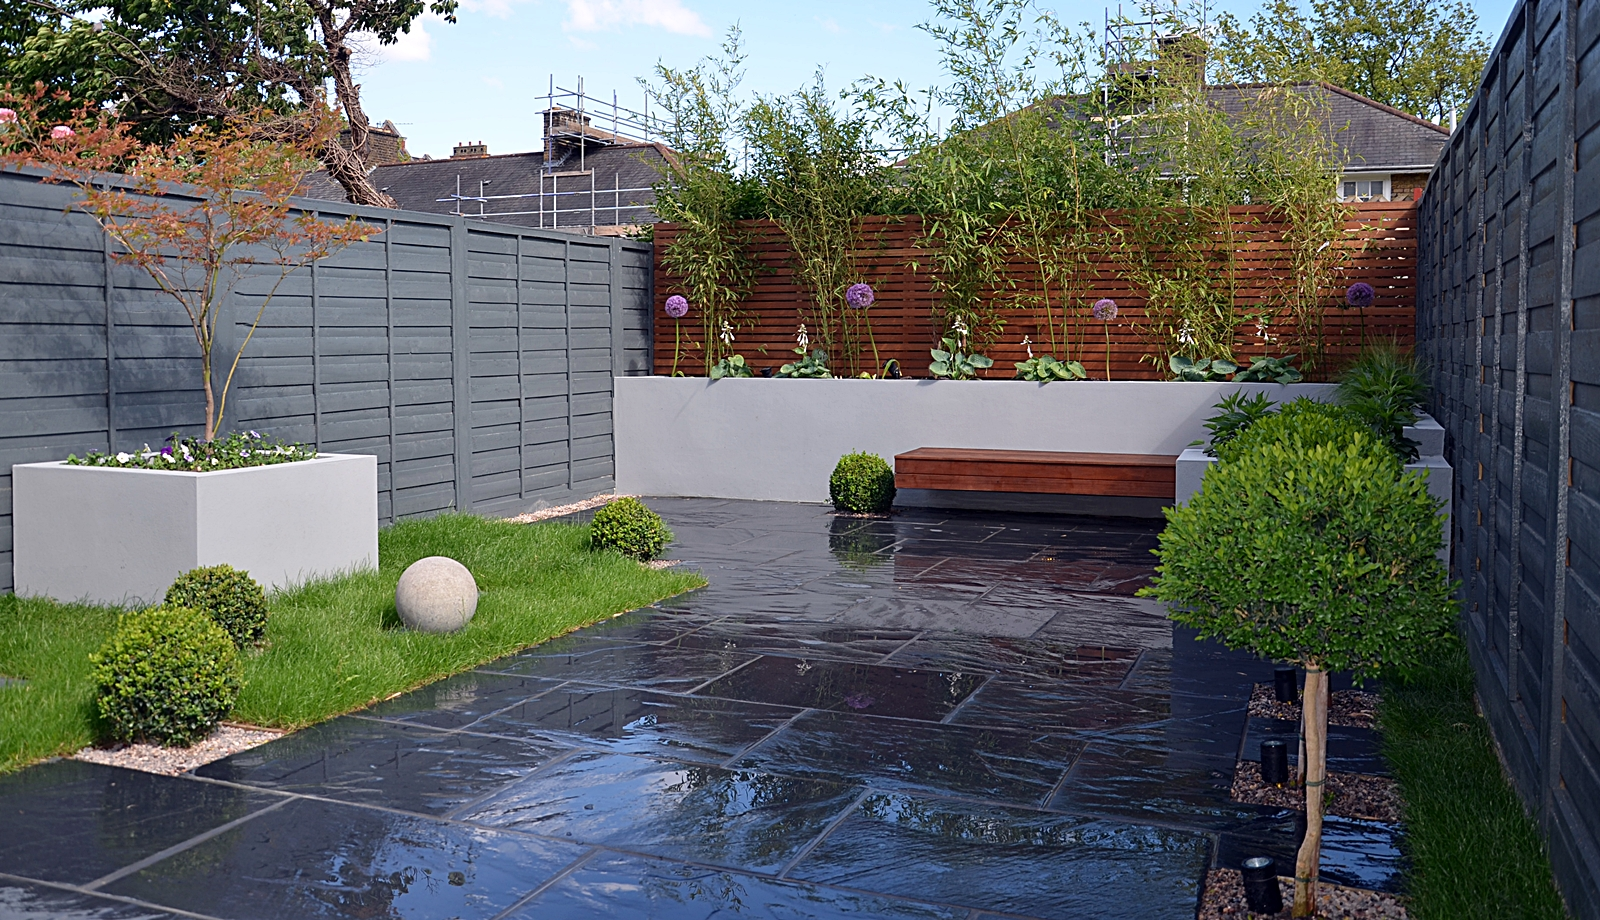 Lawn archives london garden blog for Landscape design london